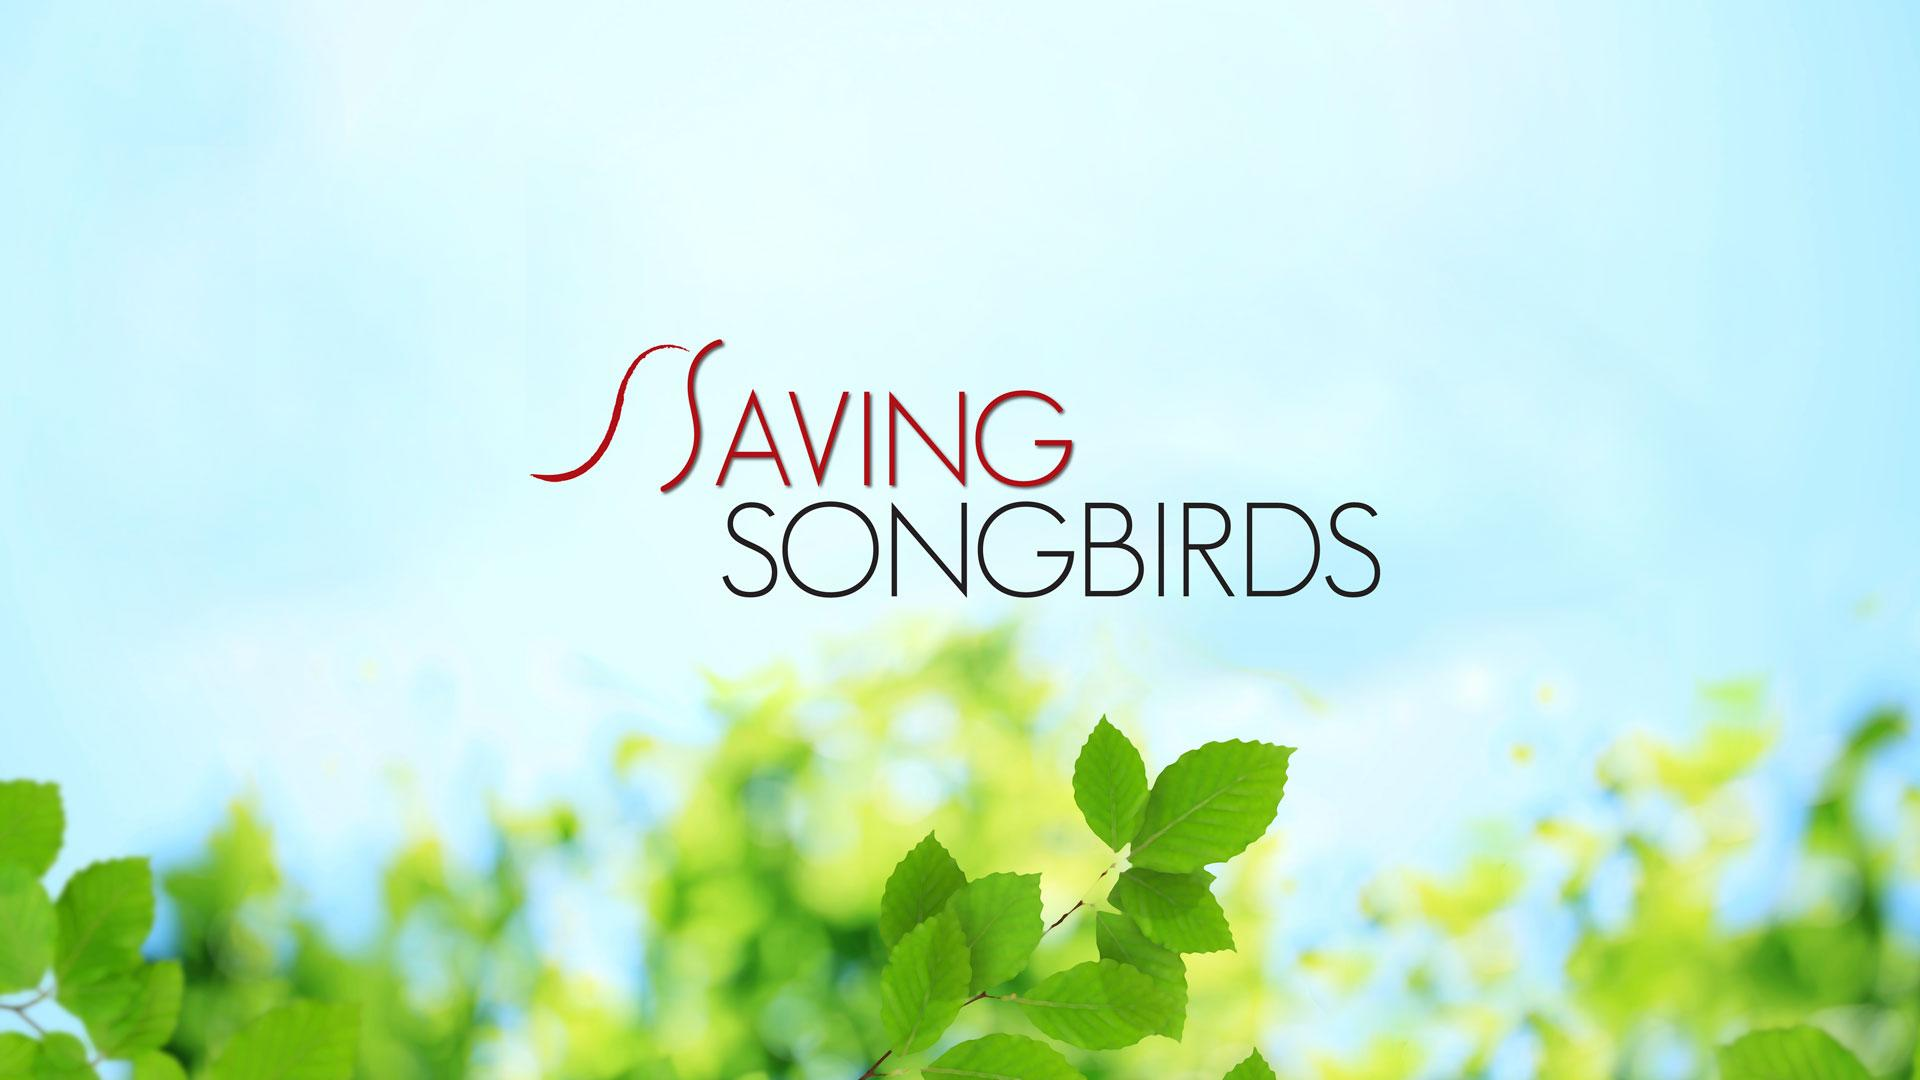 Saving Songbirds